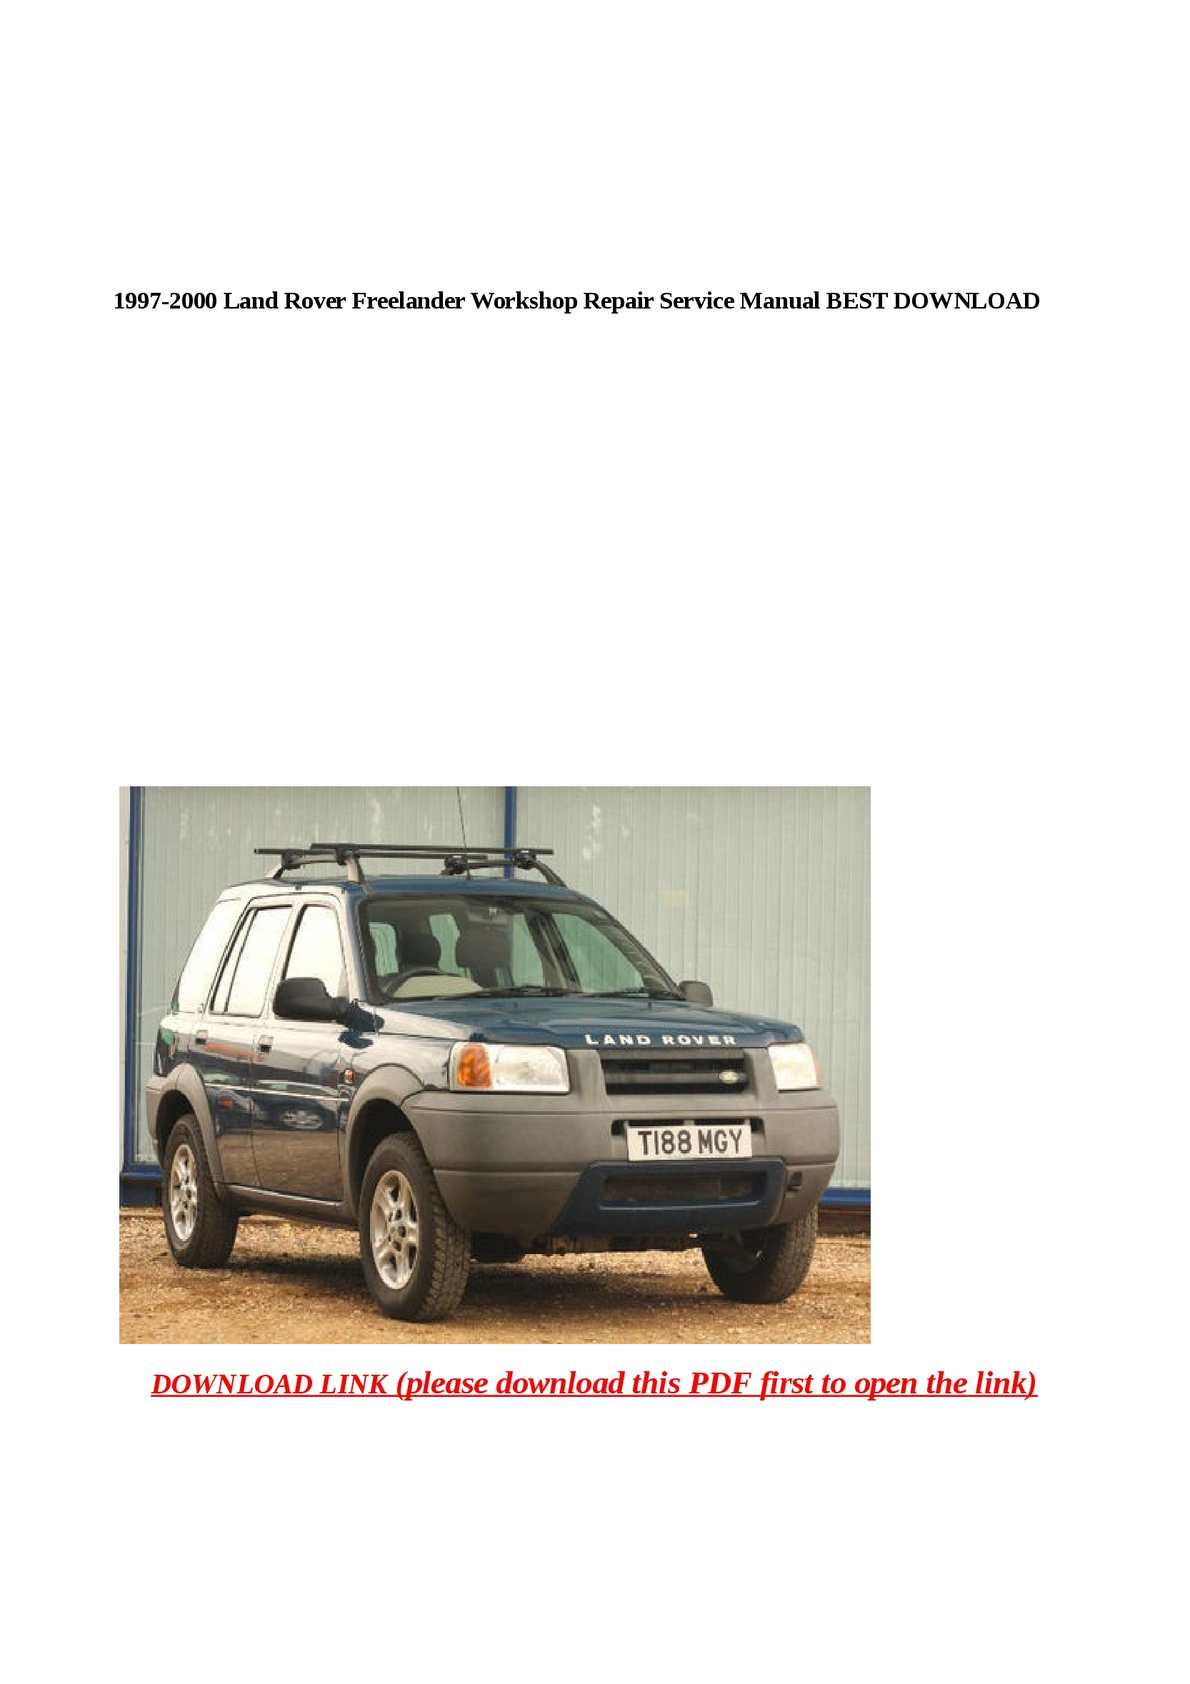 Calaméo - 1997-2000 Land Rover Freelander Workshop Repair Service Manual  BEST DOWNLOAD